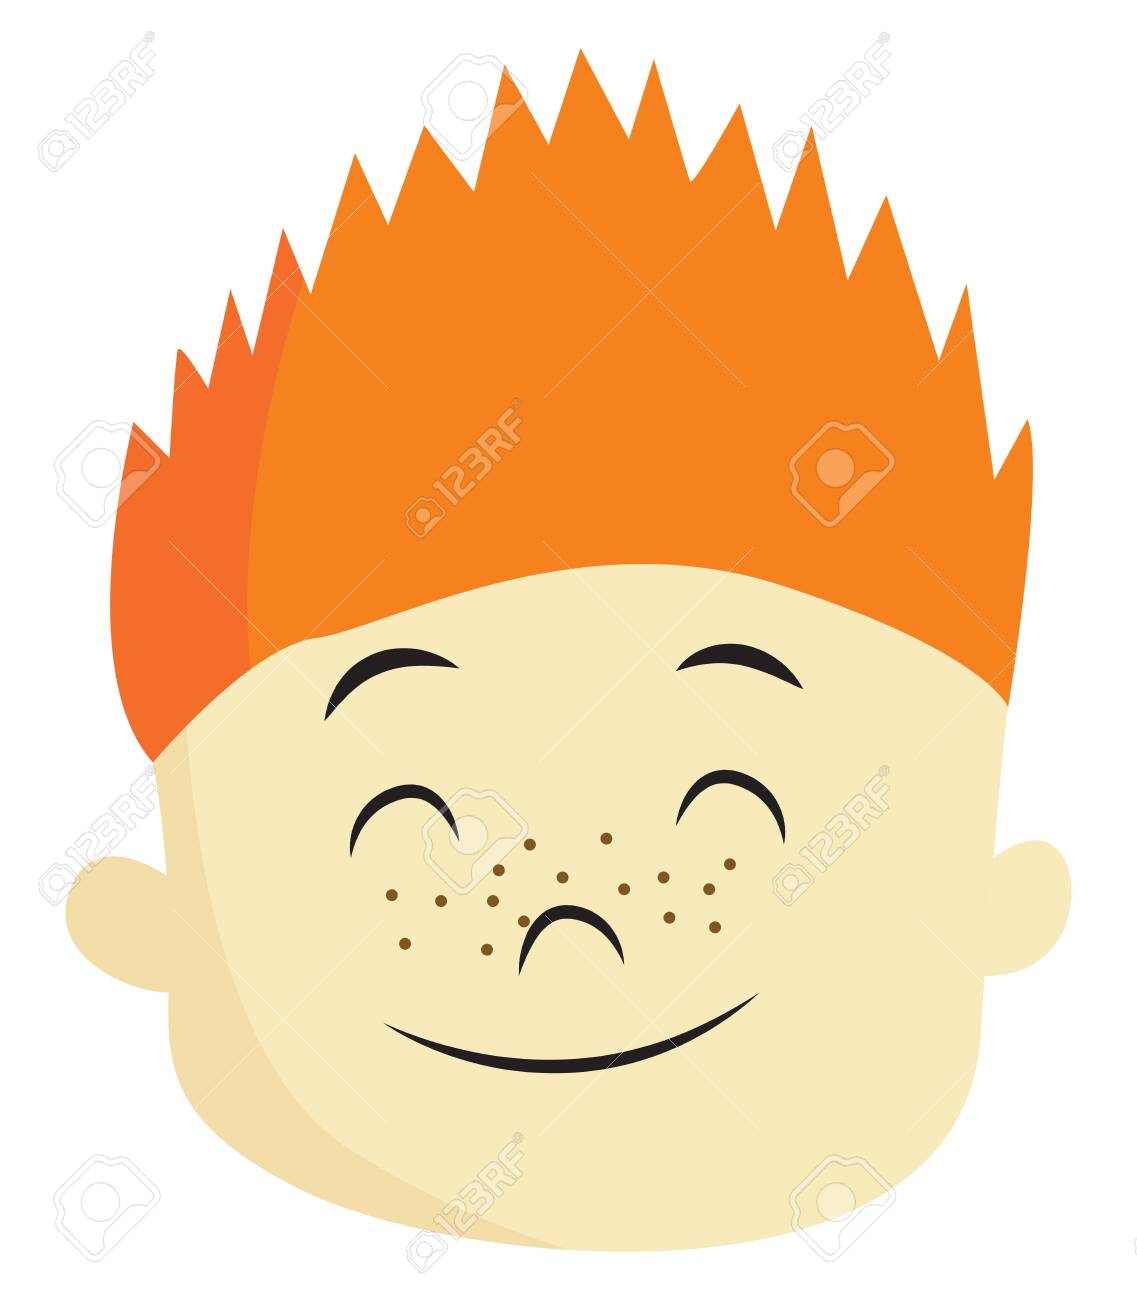 A Boy With Orange Spiked Hair And Freckles On The Face Is Closing Royalty Free Cliparts Vectors And Stock Illustration Image 123411971